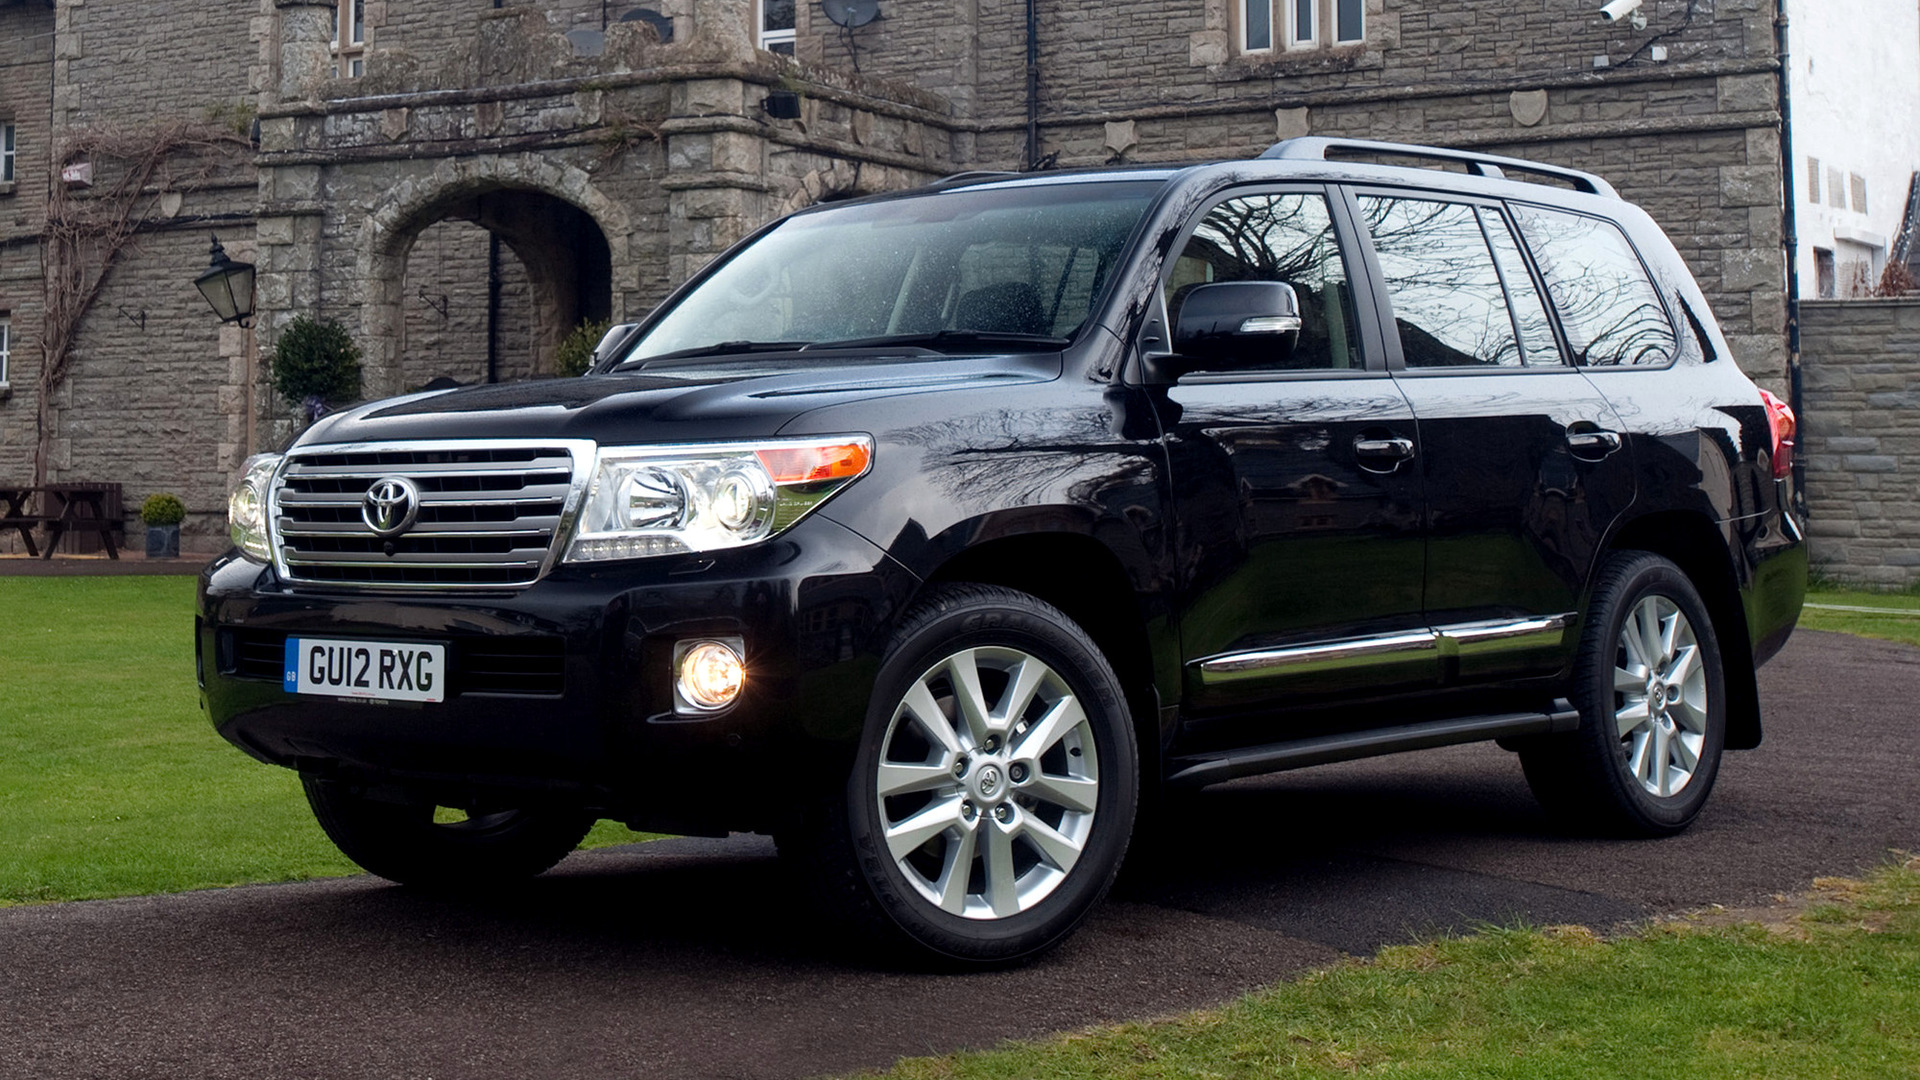 Toyota Land Cruiser 70 >> Toyota Land Cruiser V8 (2012) Wallpapers and HD Images